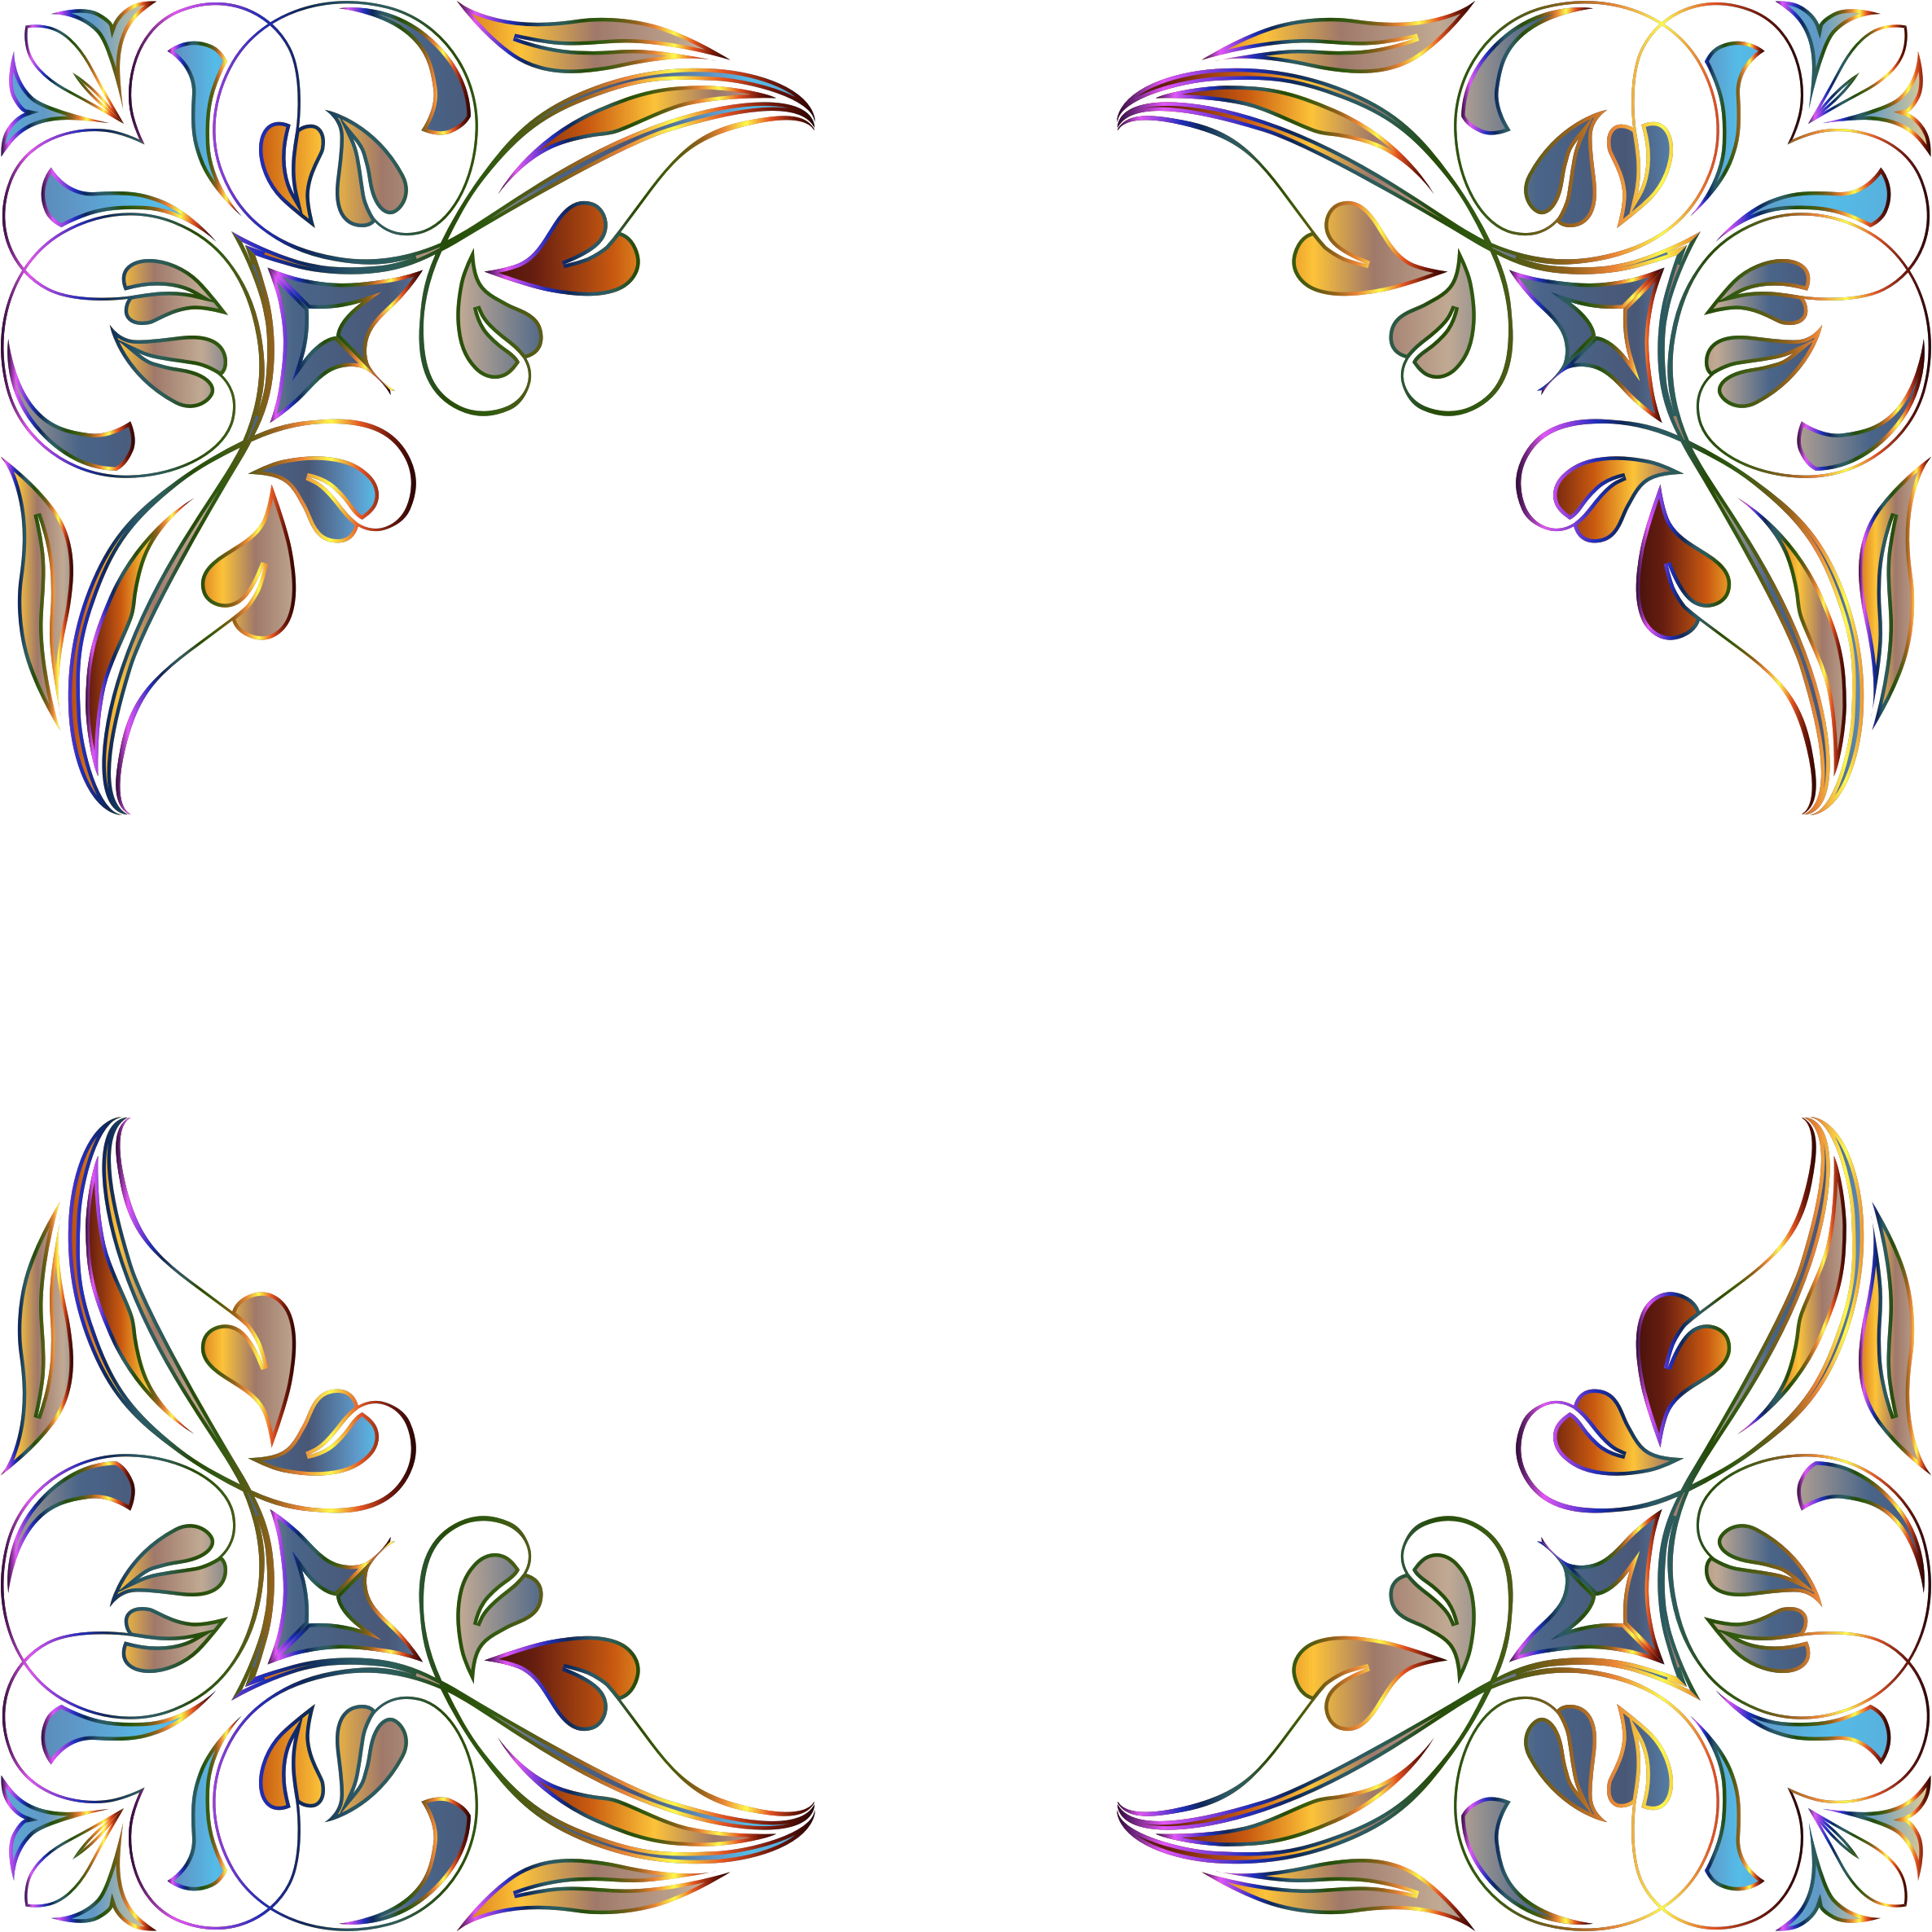 Floral Flourish Frame 7 Variation 2 by GDJ